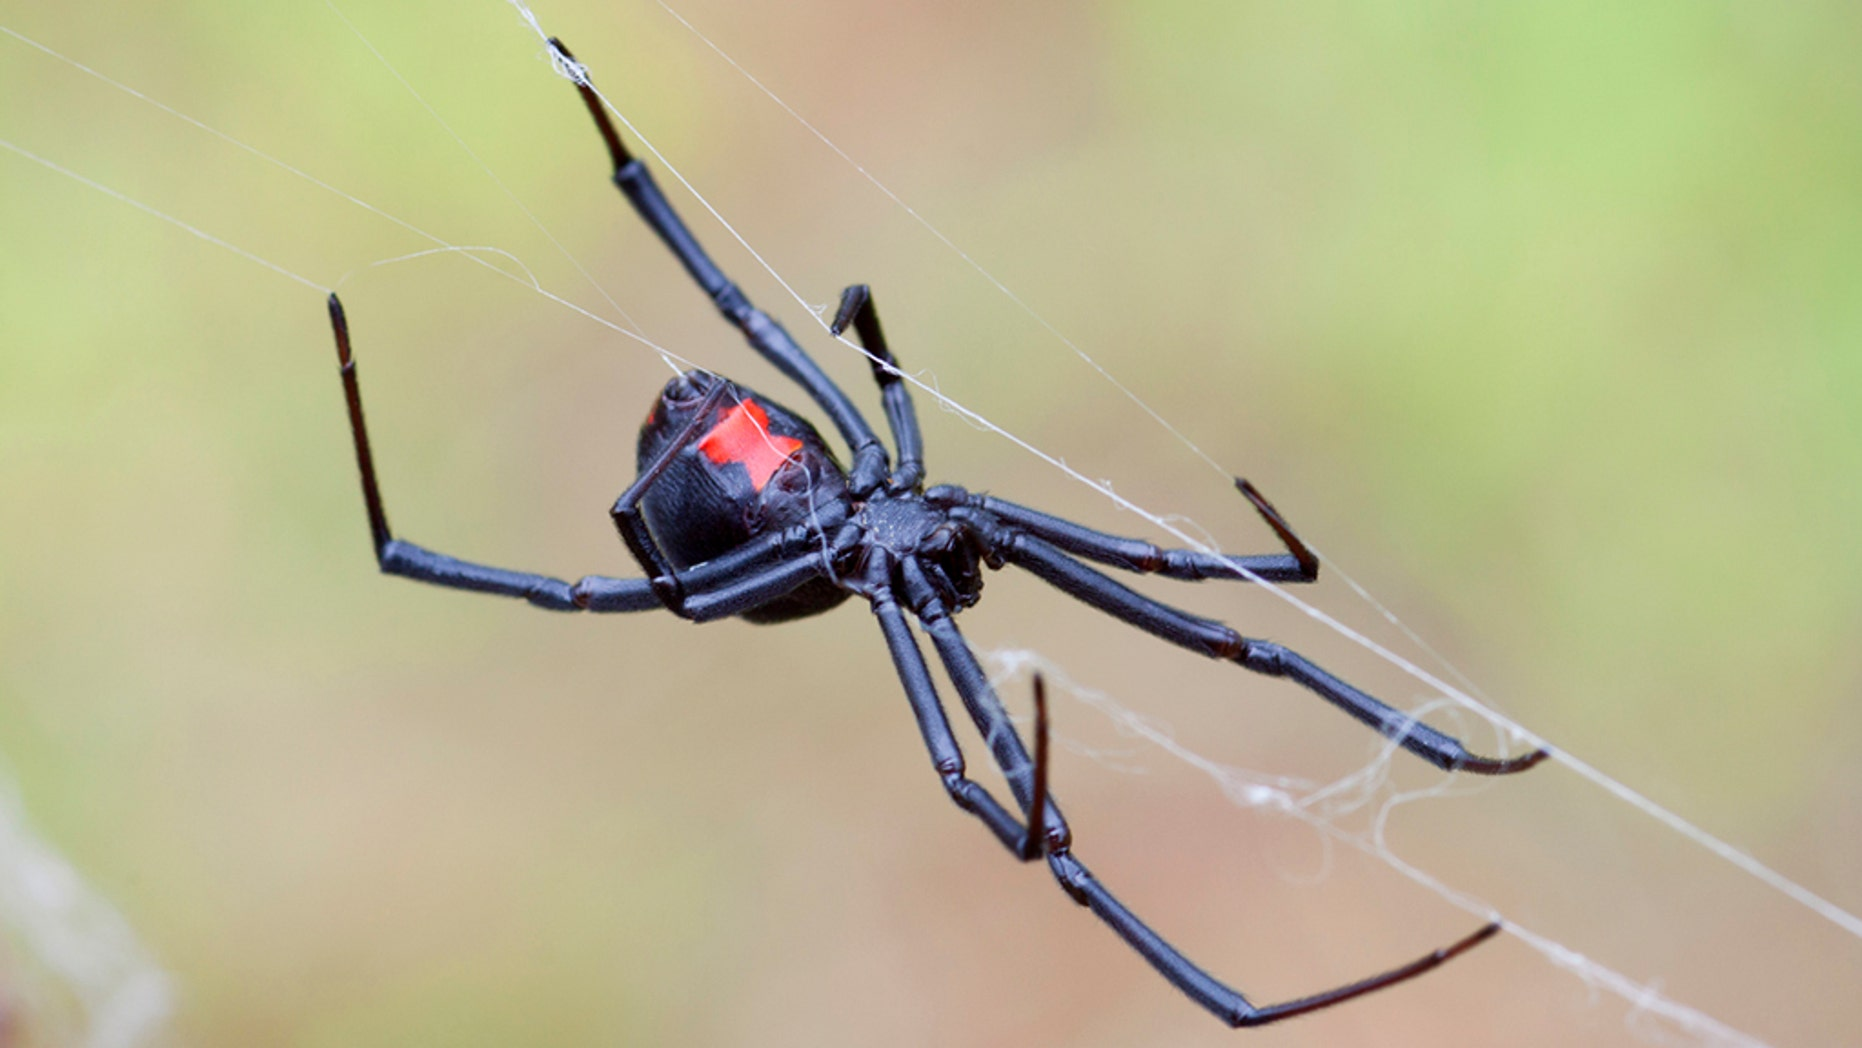 Man using blowtorch to kill spiders inadvertently sets parents' home ablaze